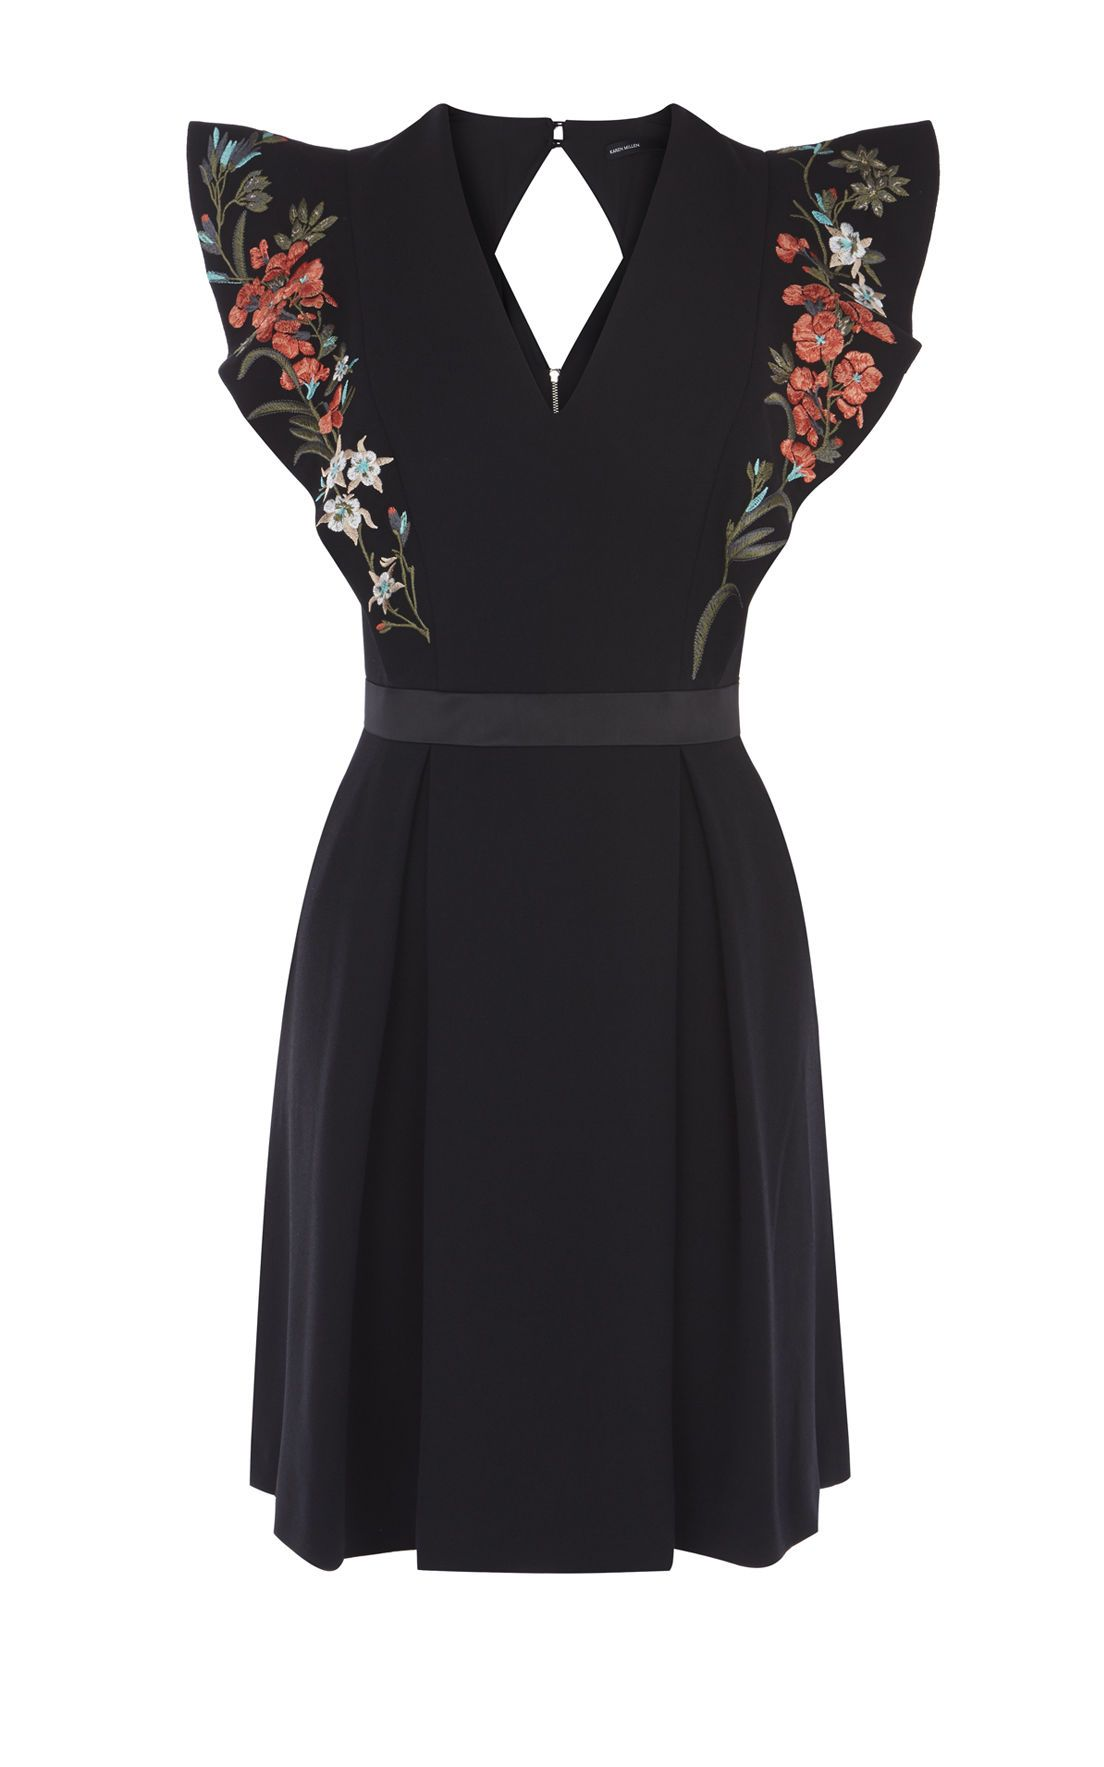 This Pretty Black Dress Is Embroidered With Colourful Flowers Designed At Our In House Atelier A Diamond C Embroidered Dress Boho Dresses Pretty Black Dresses [ 1767 x 1104 Pixel ]